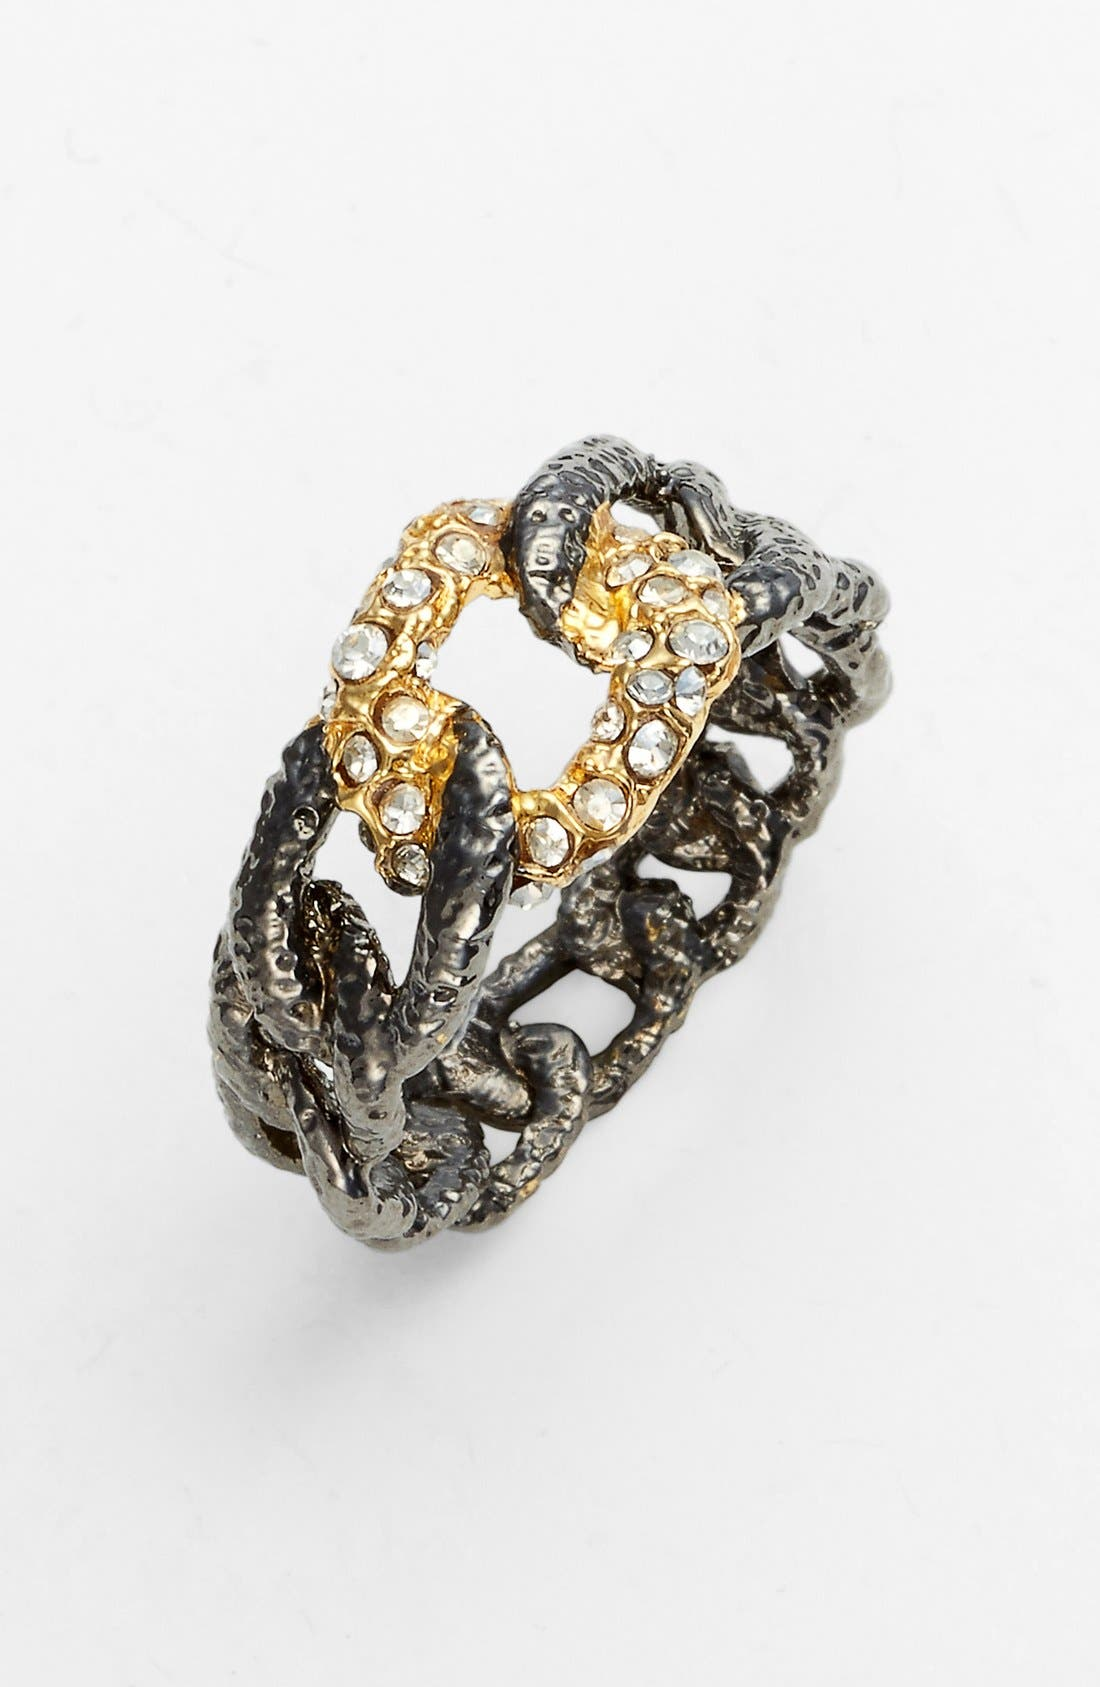 Main Image - Alexis Bittar 'Elements - Jardin de Papillon' Chain Link Ring